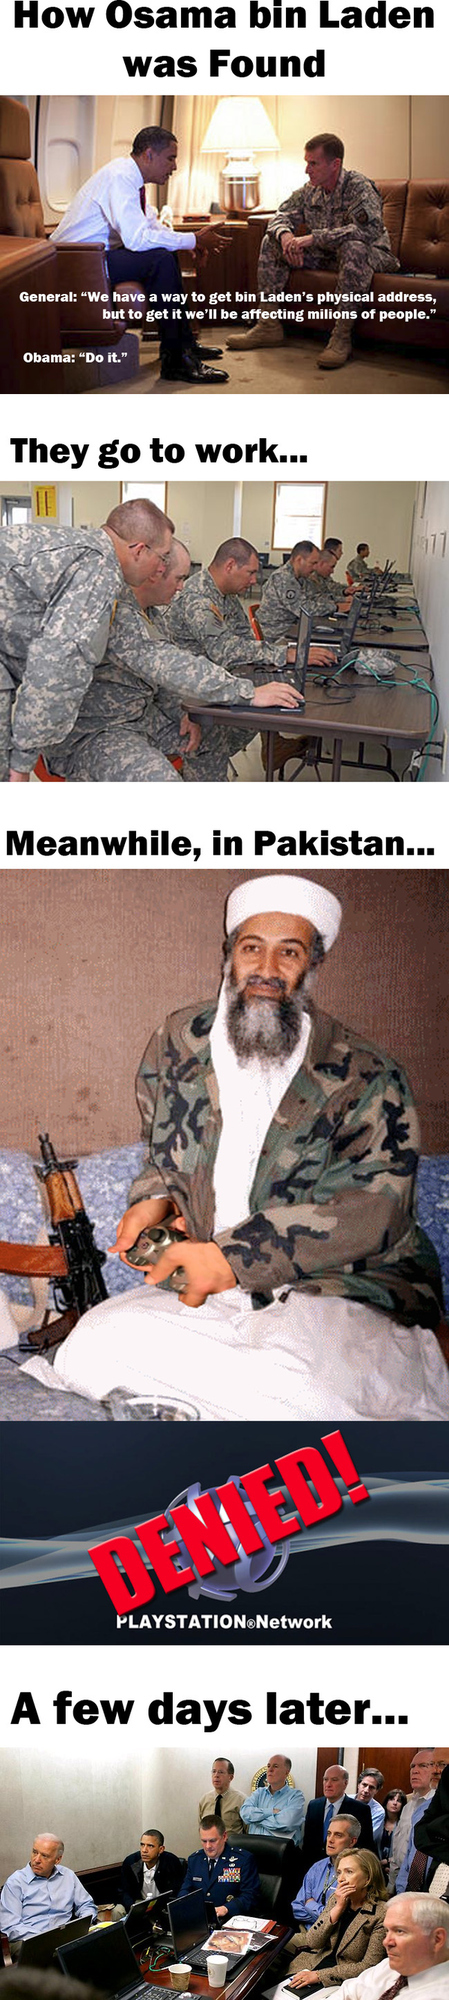 How Osama Bin Laden Was Found